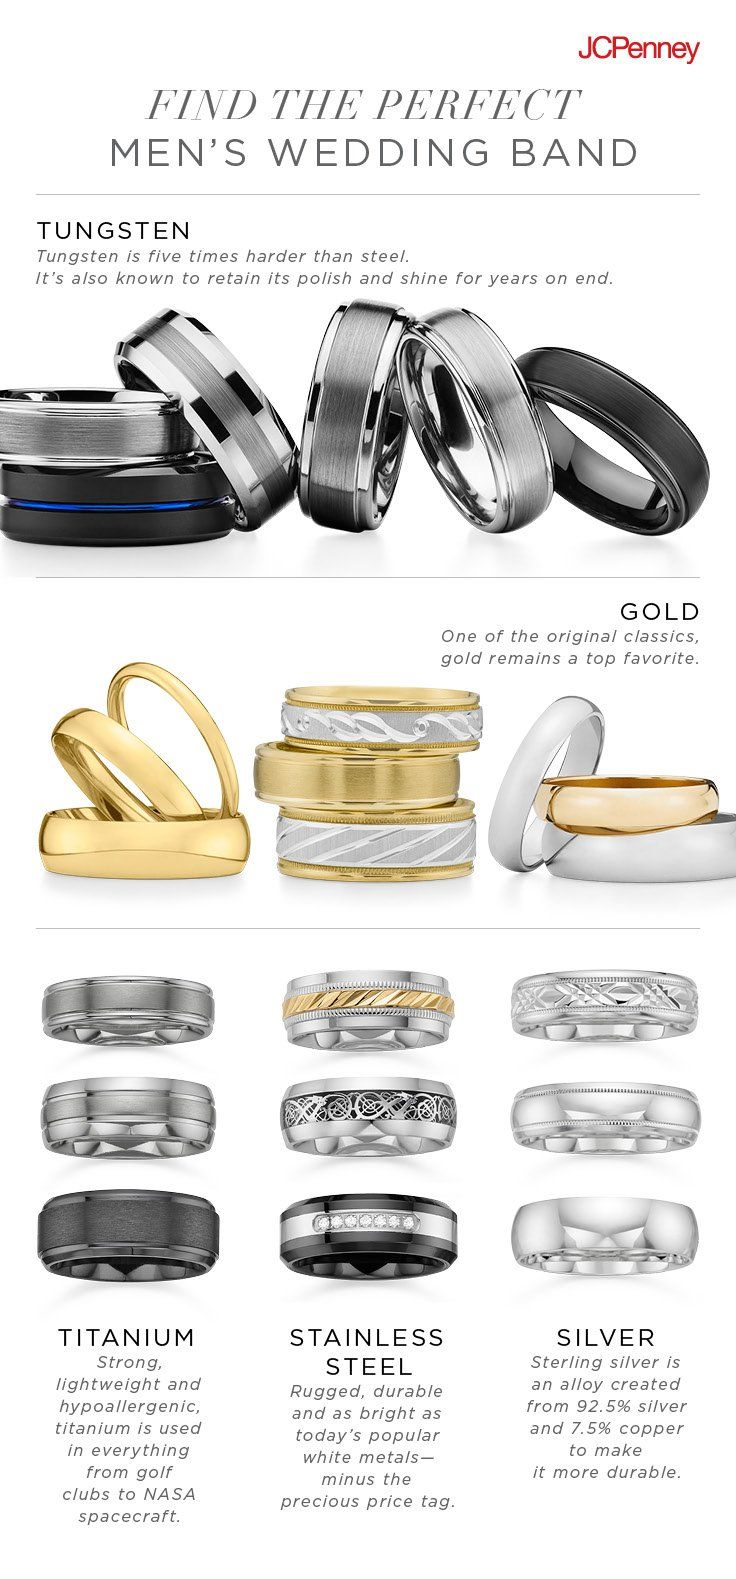 6f2a55c35 Wedding season is officially here. Get a head start on his forever wedding  ring by doing a little homework on the metal that would suit him best.